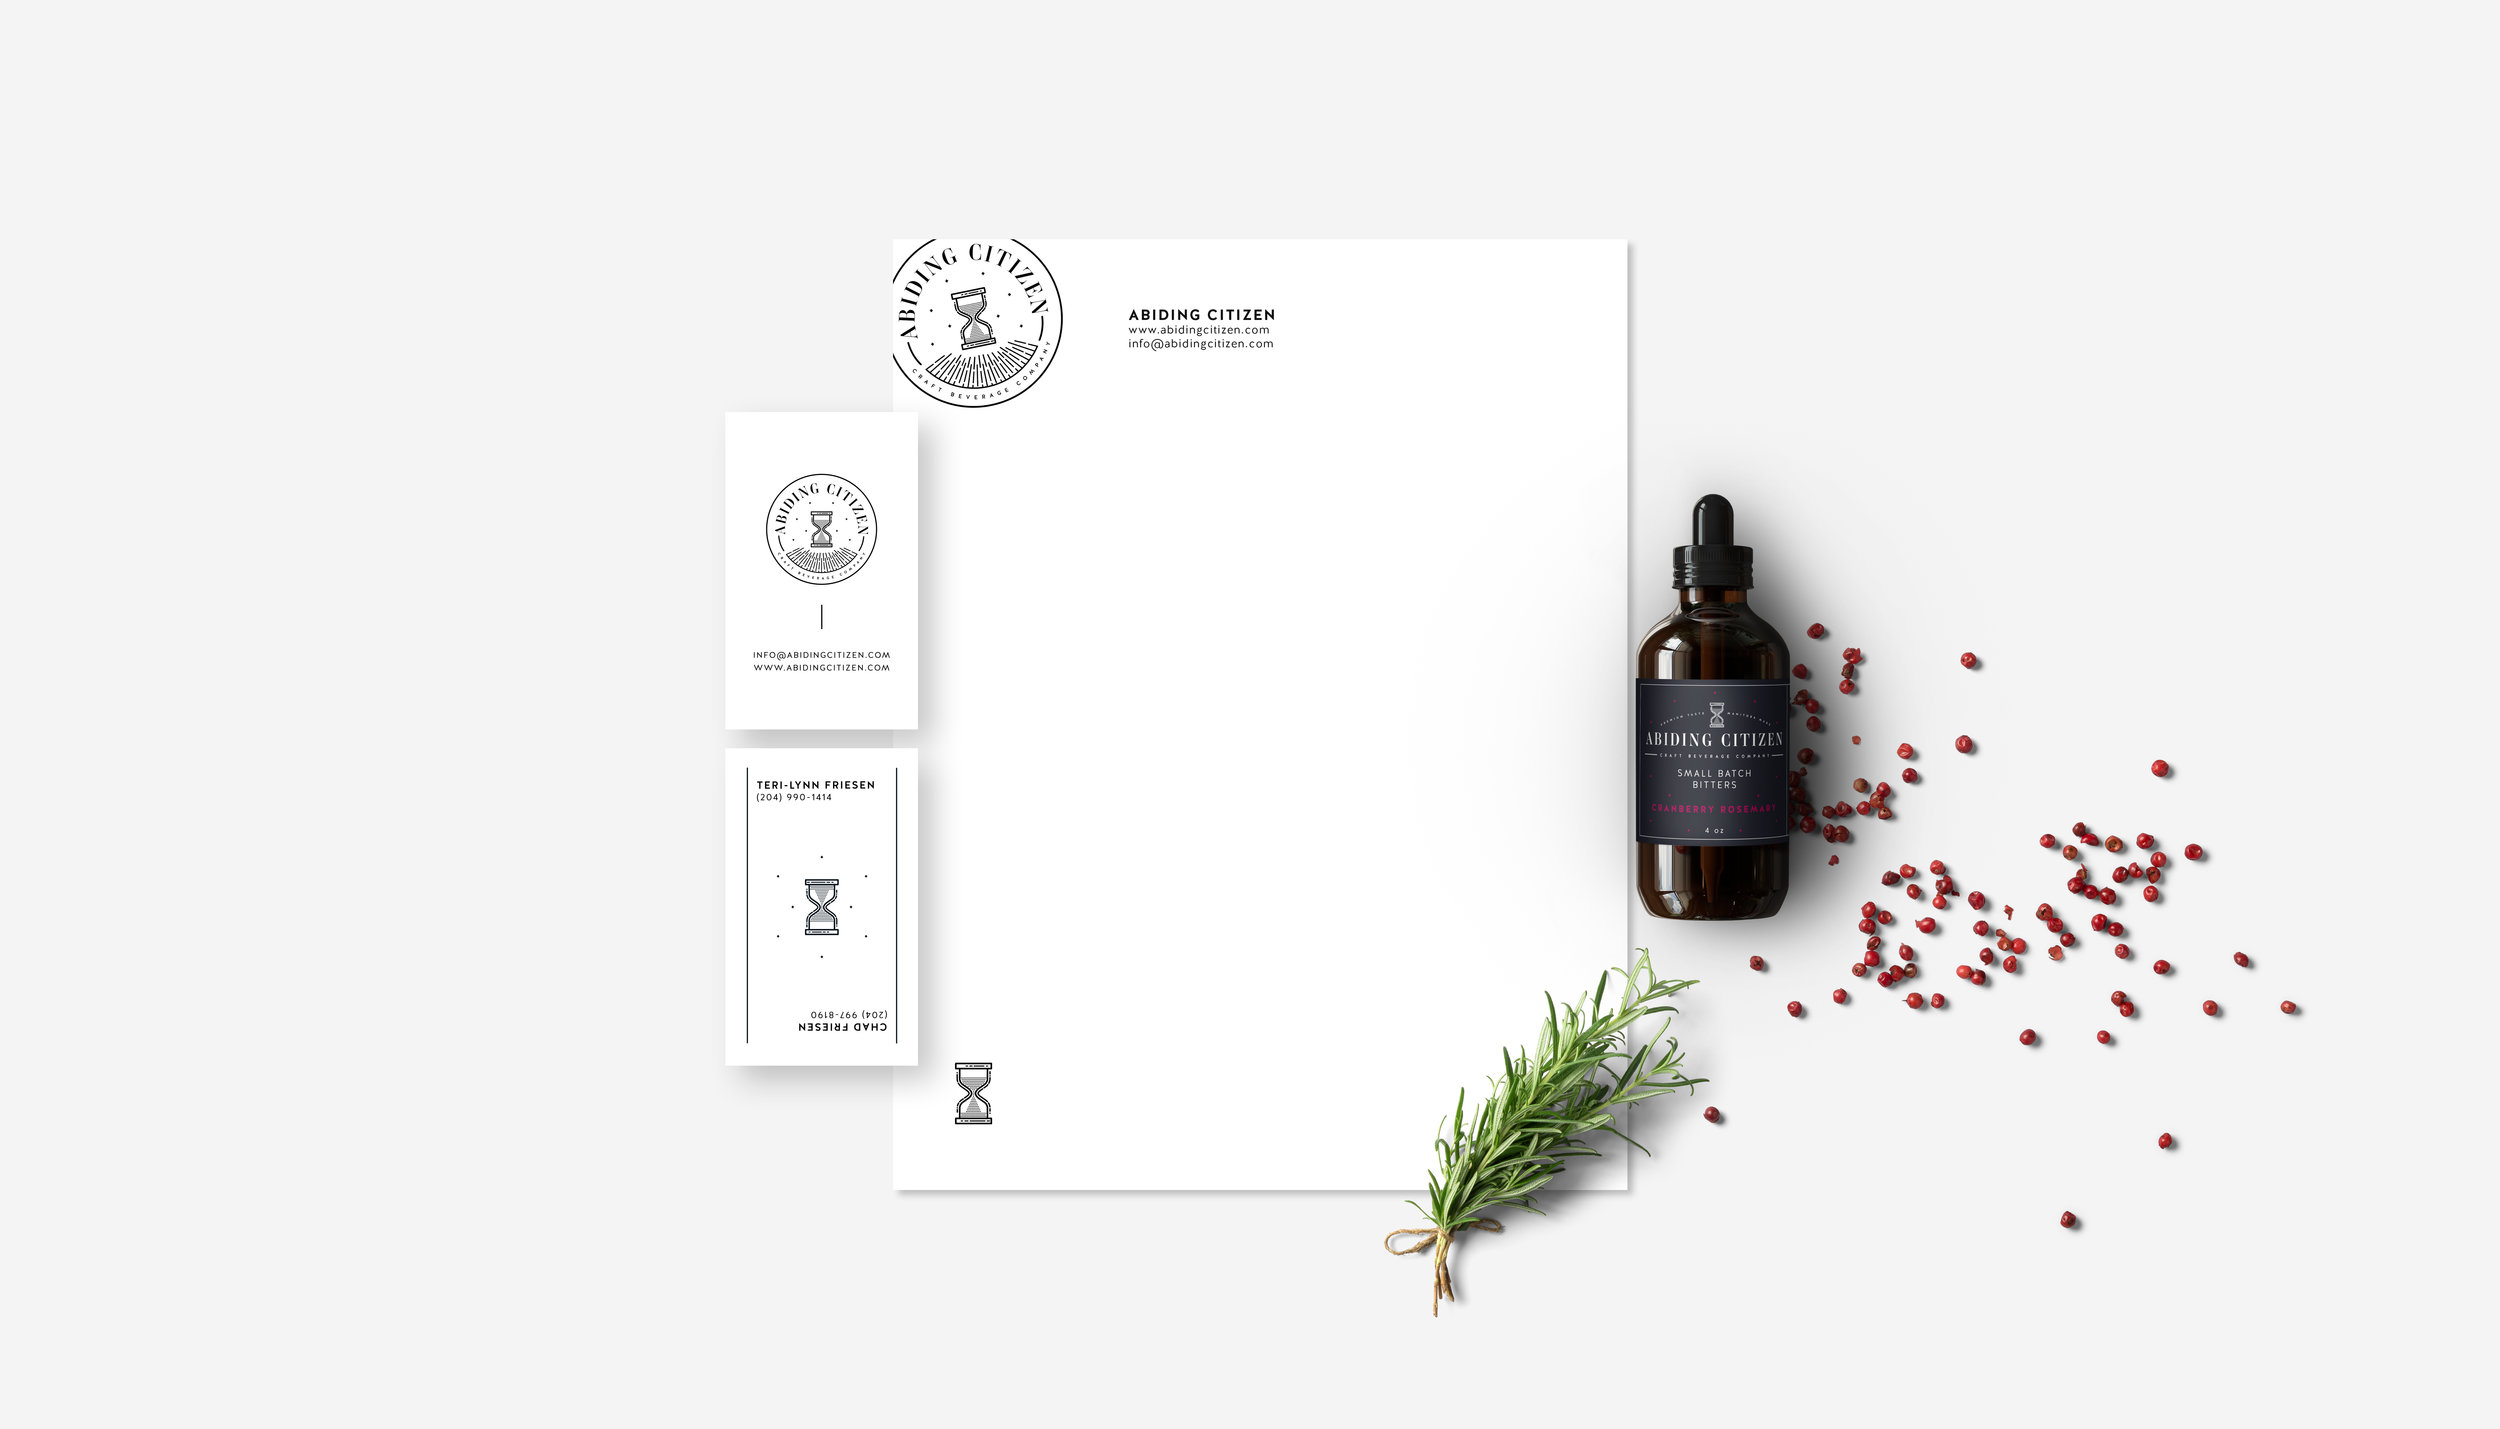 abiding-citizen-craft-beverage-company-branding-design-label-packaging-clover-and-crow